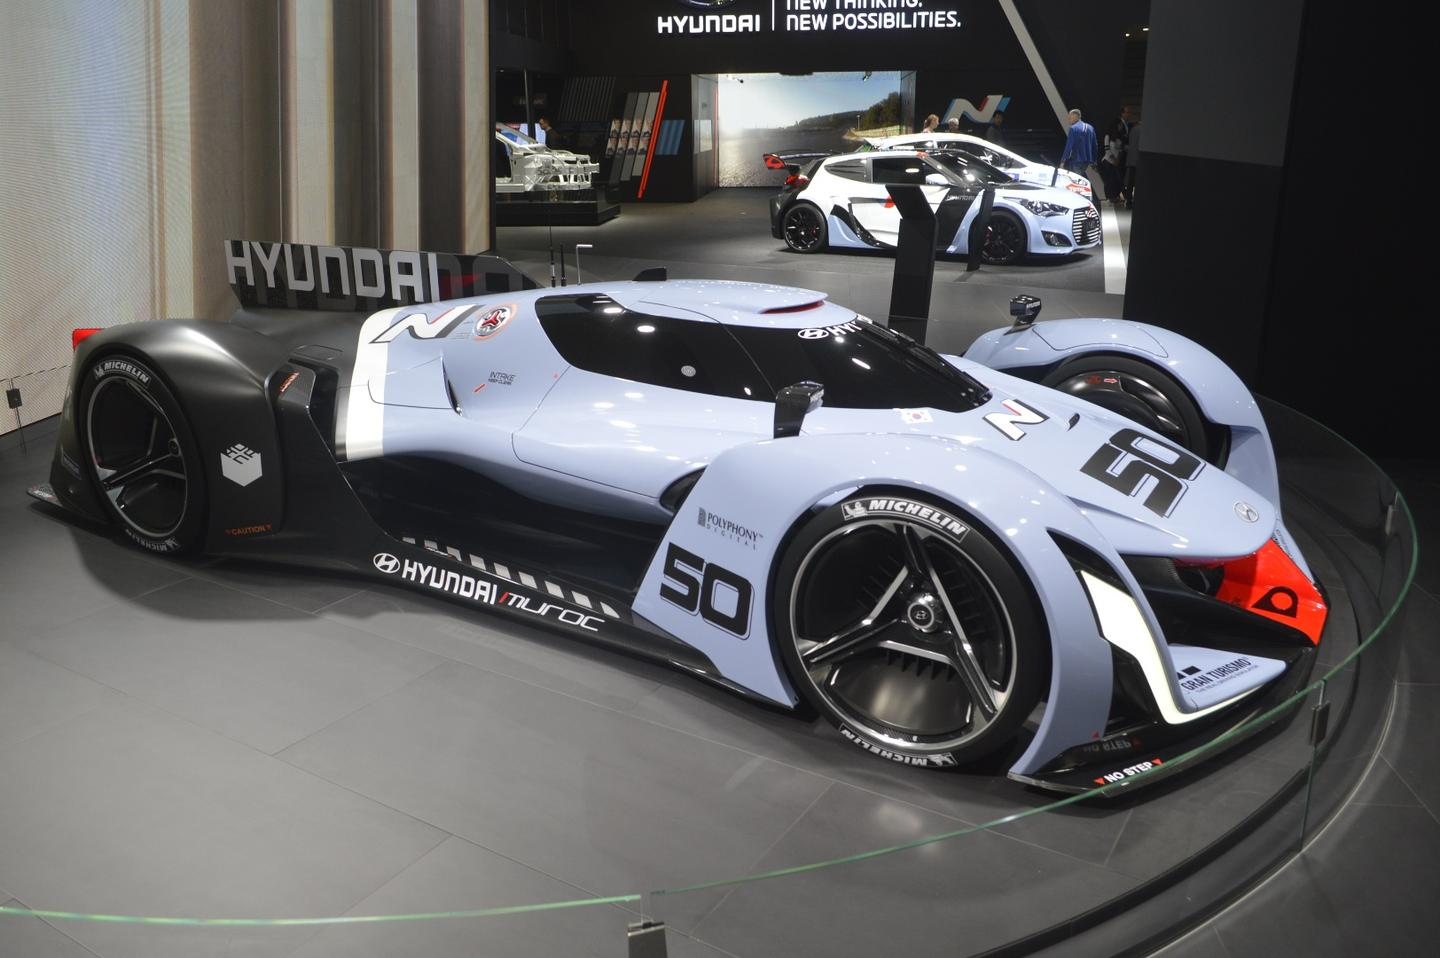 The N 2025 Vision Gran Turismo is described as looking like a floating jet fighter